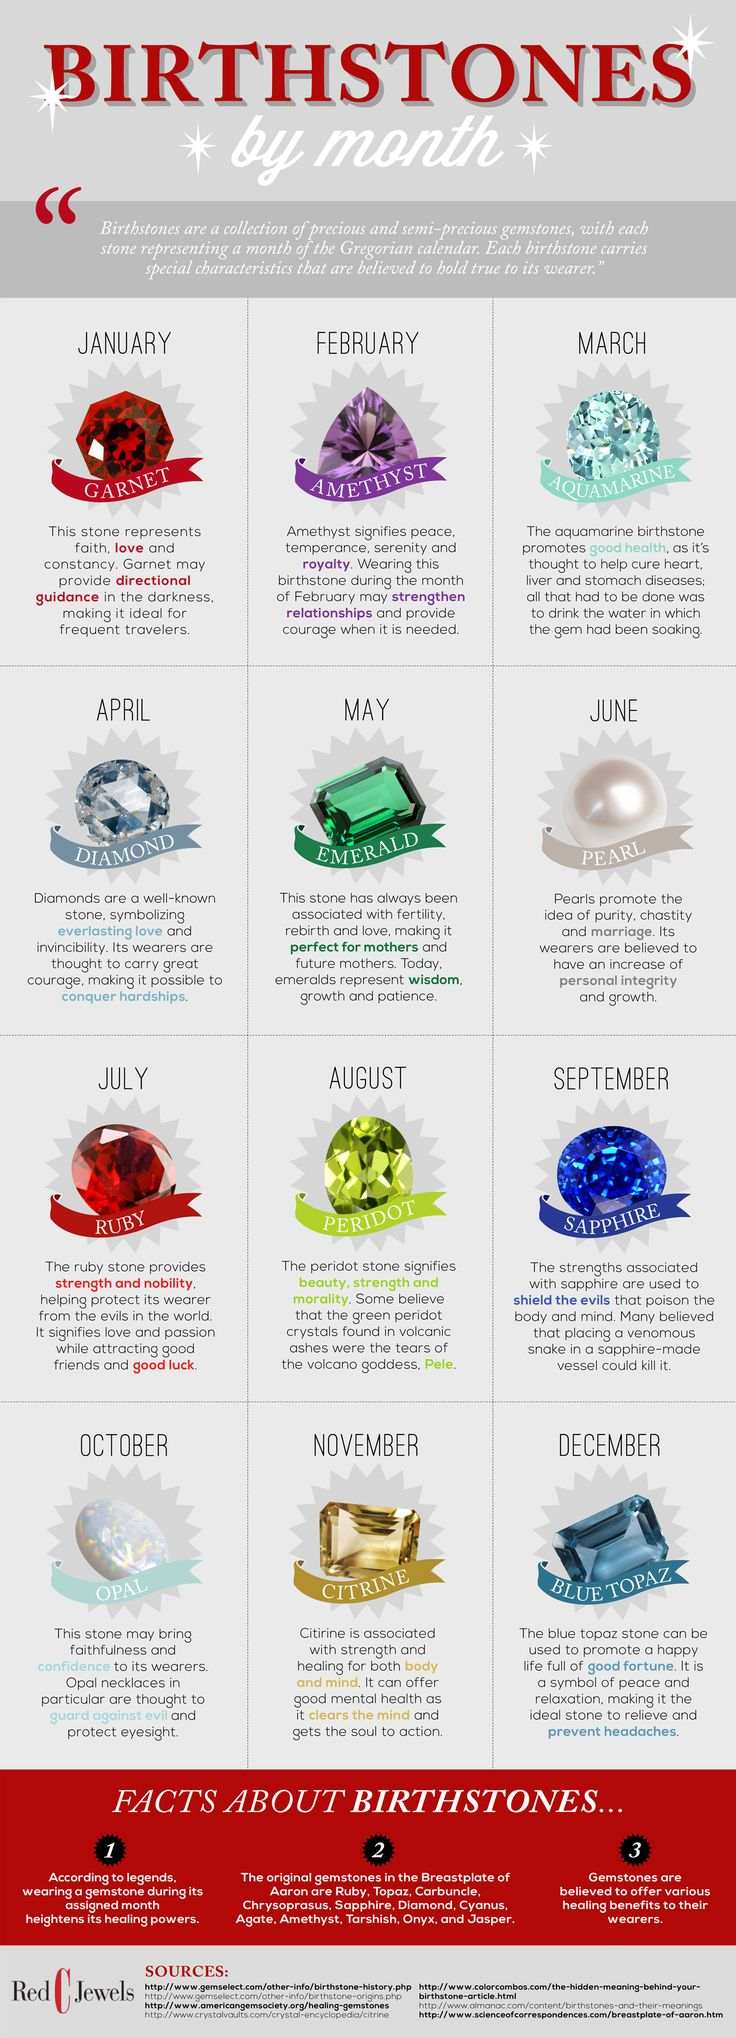 Birthstone Chart by month www.redcjewels.com Los Angeles, CA